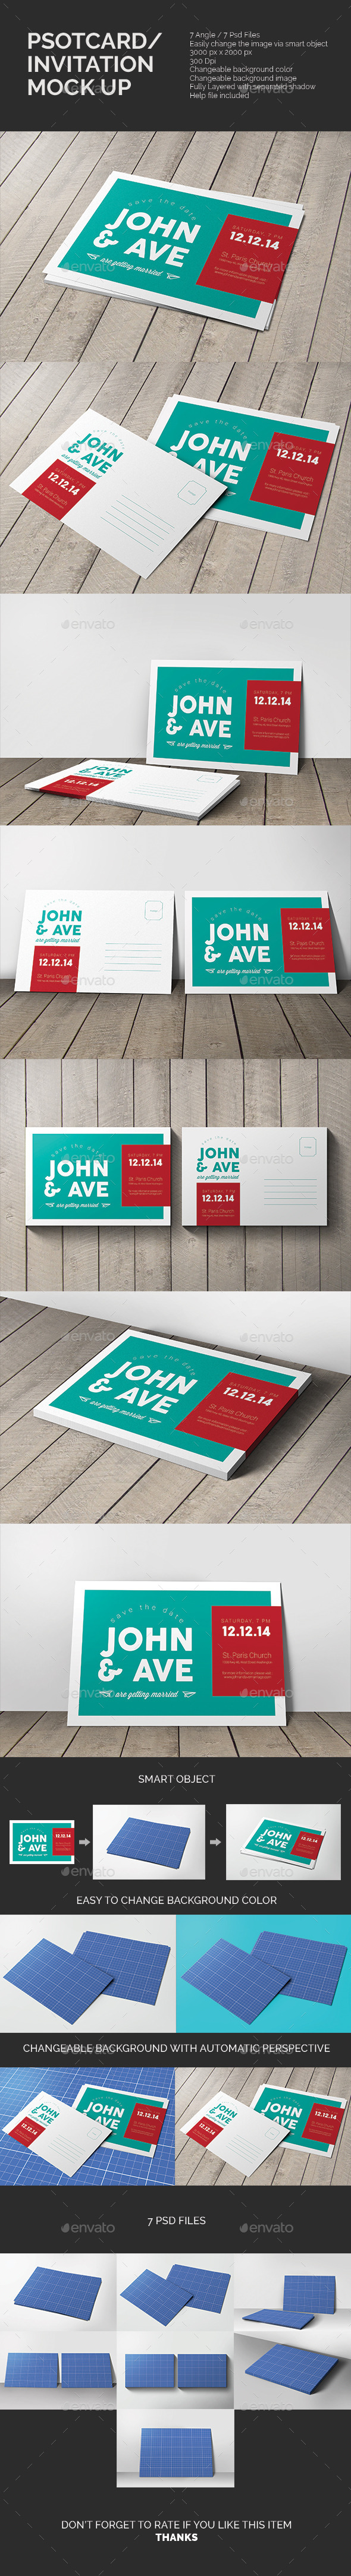 GraphicRiver Postcard & Invitation Mock-up 10448763